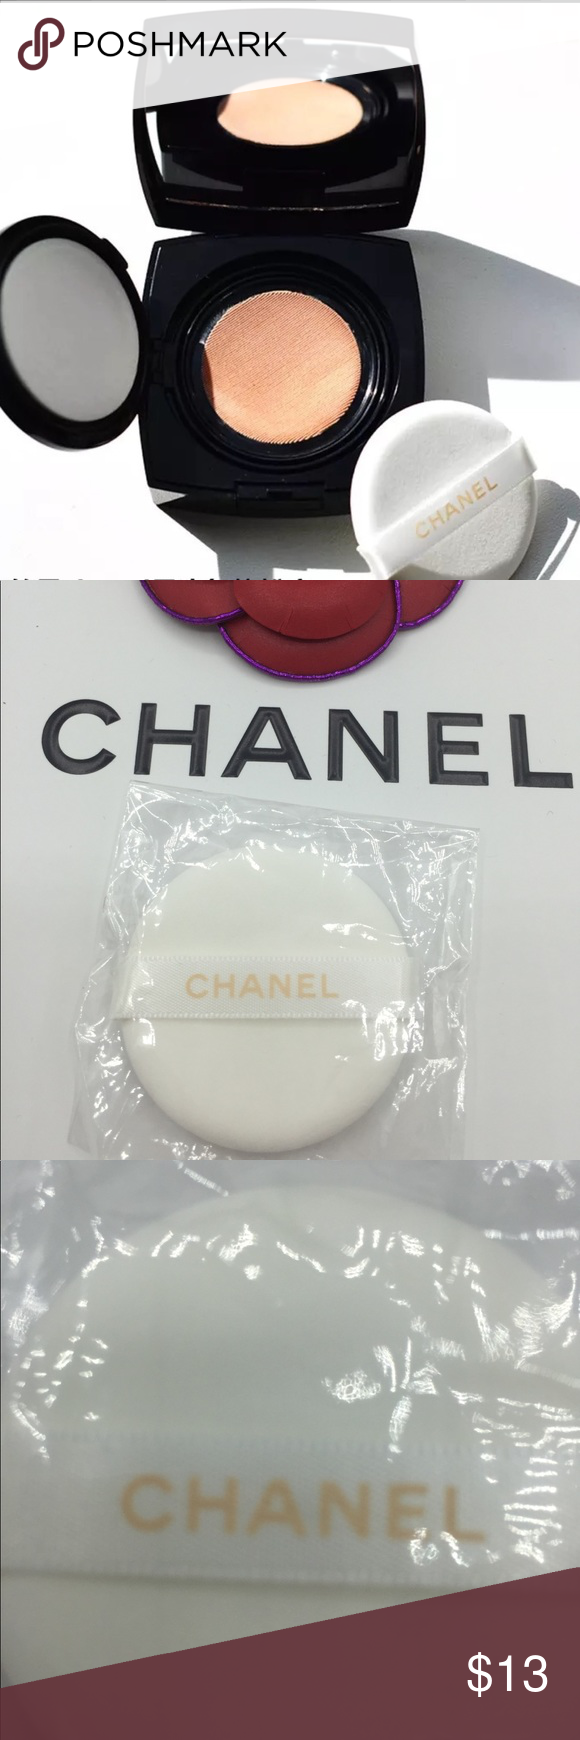 Chanel Gel Touch foundation sponge Brand new CHANEL Makeup